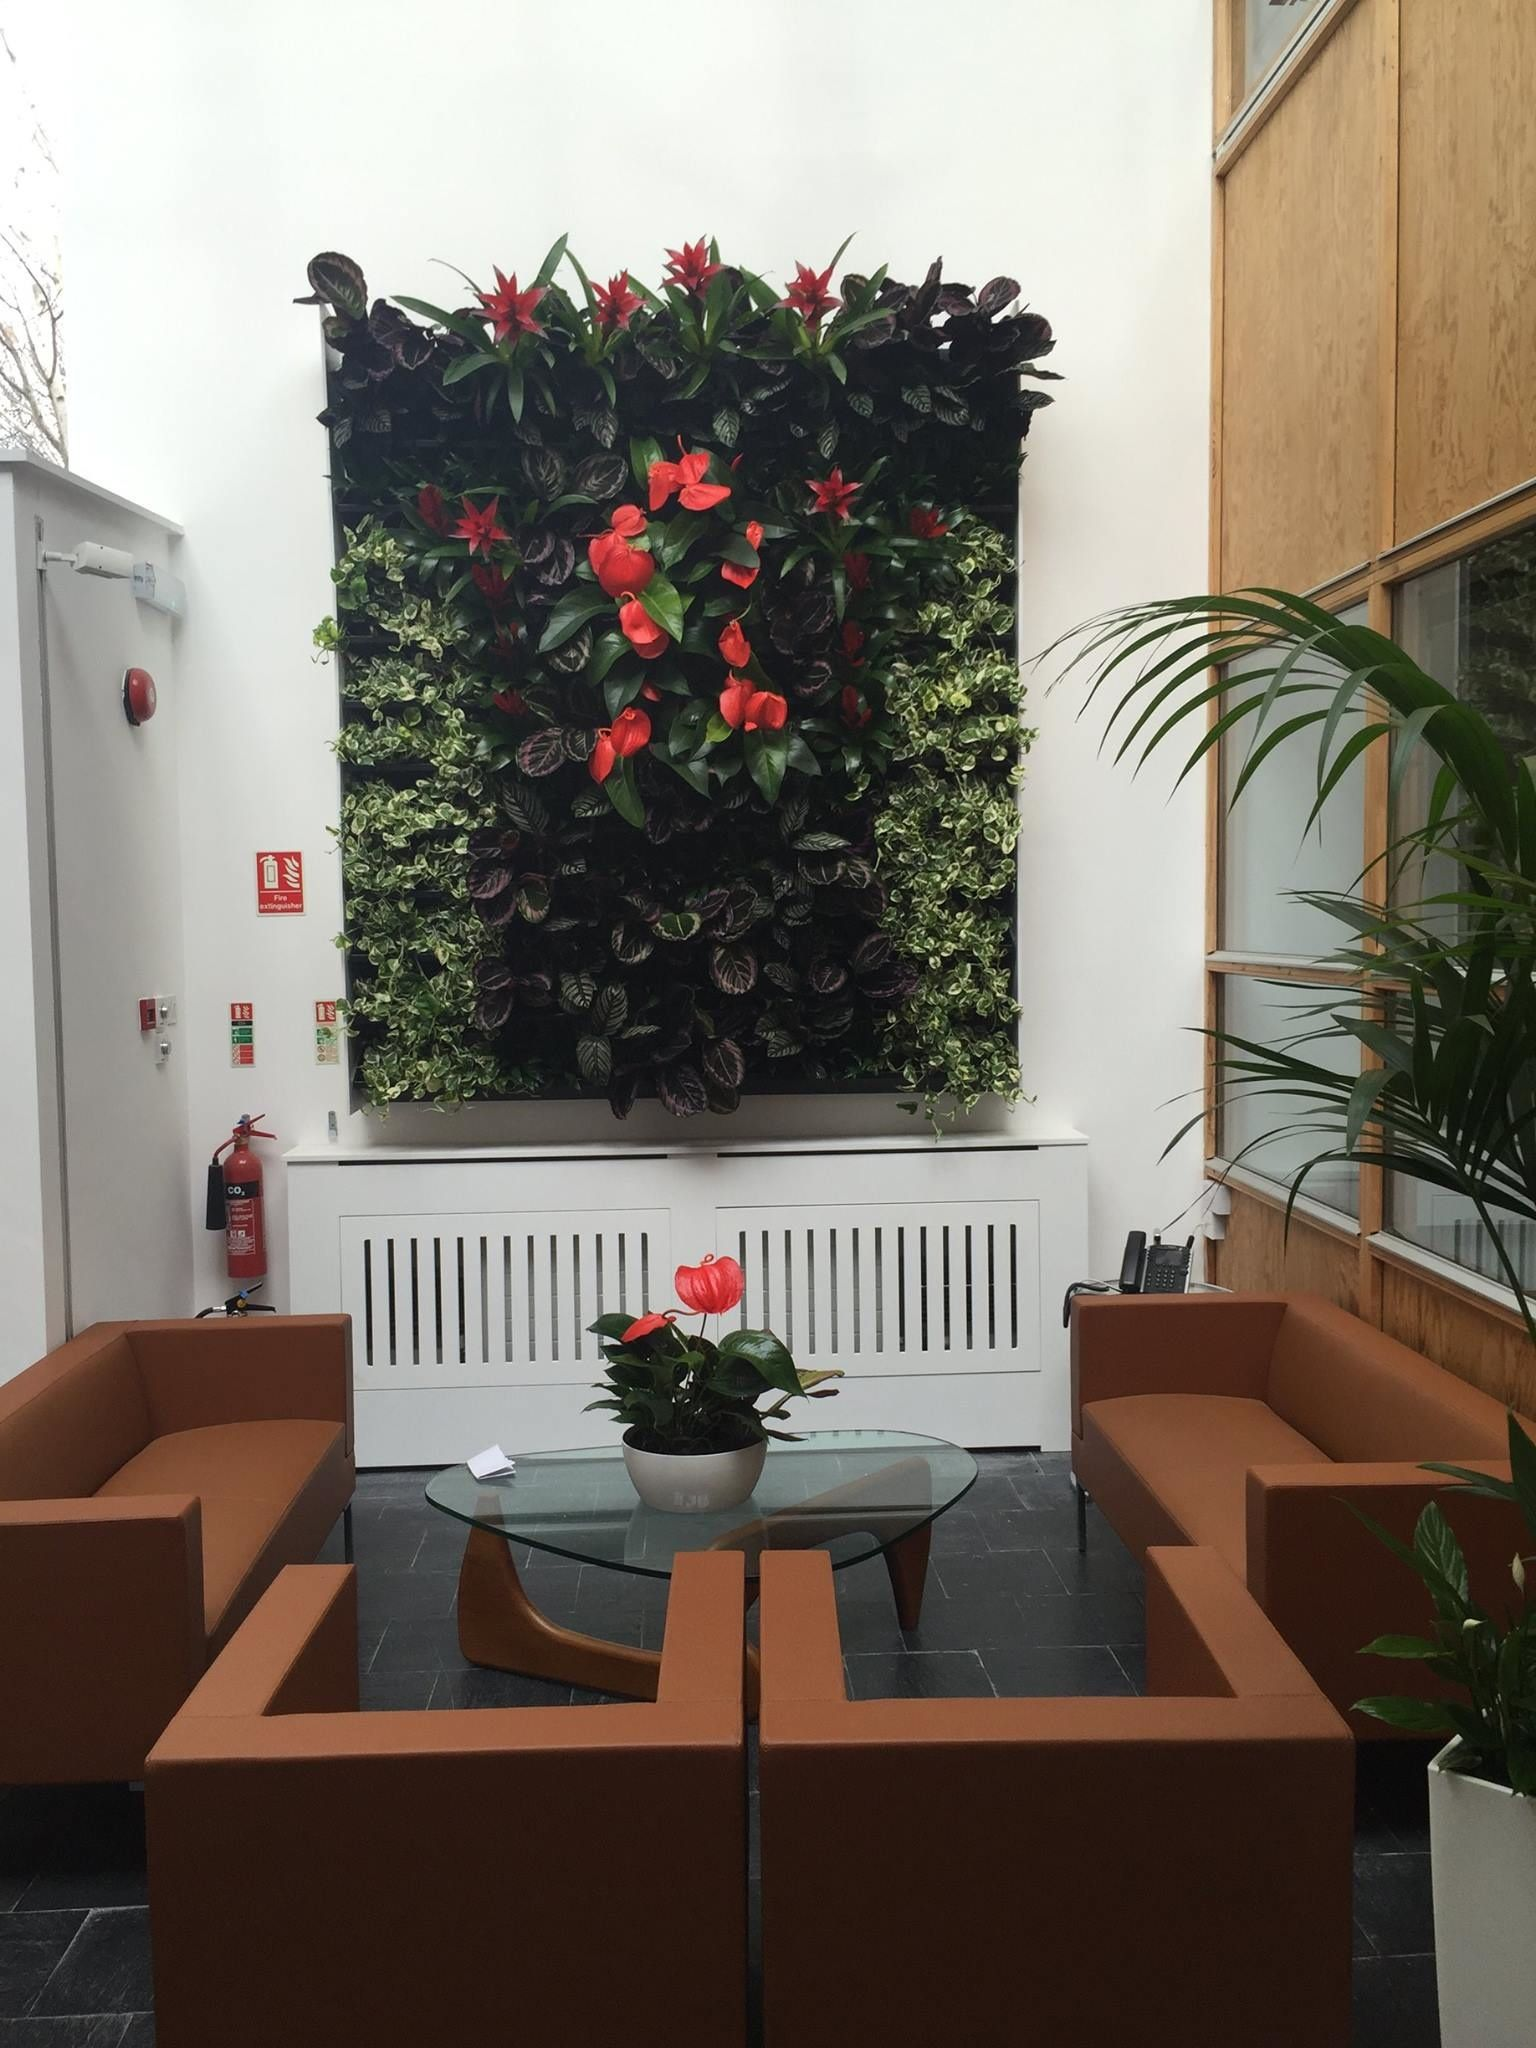 Living Wall For An Office Reception